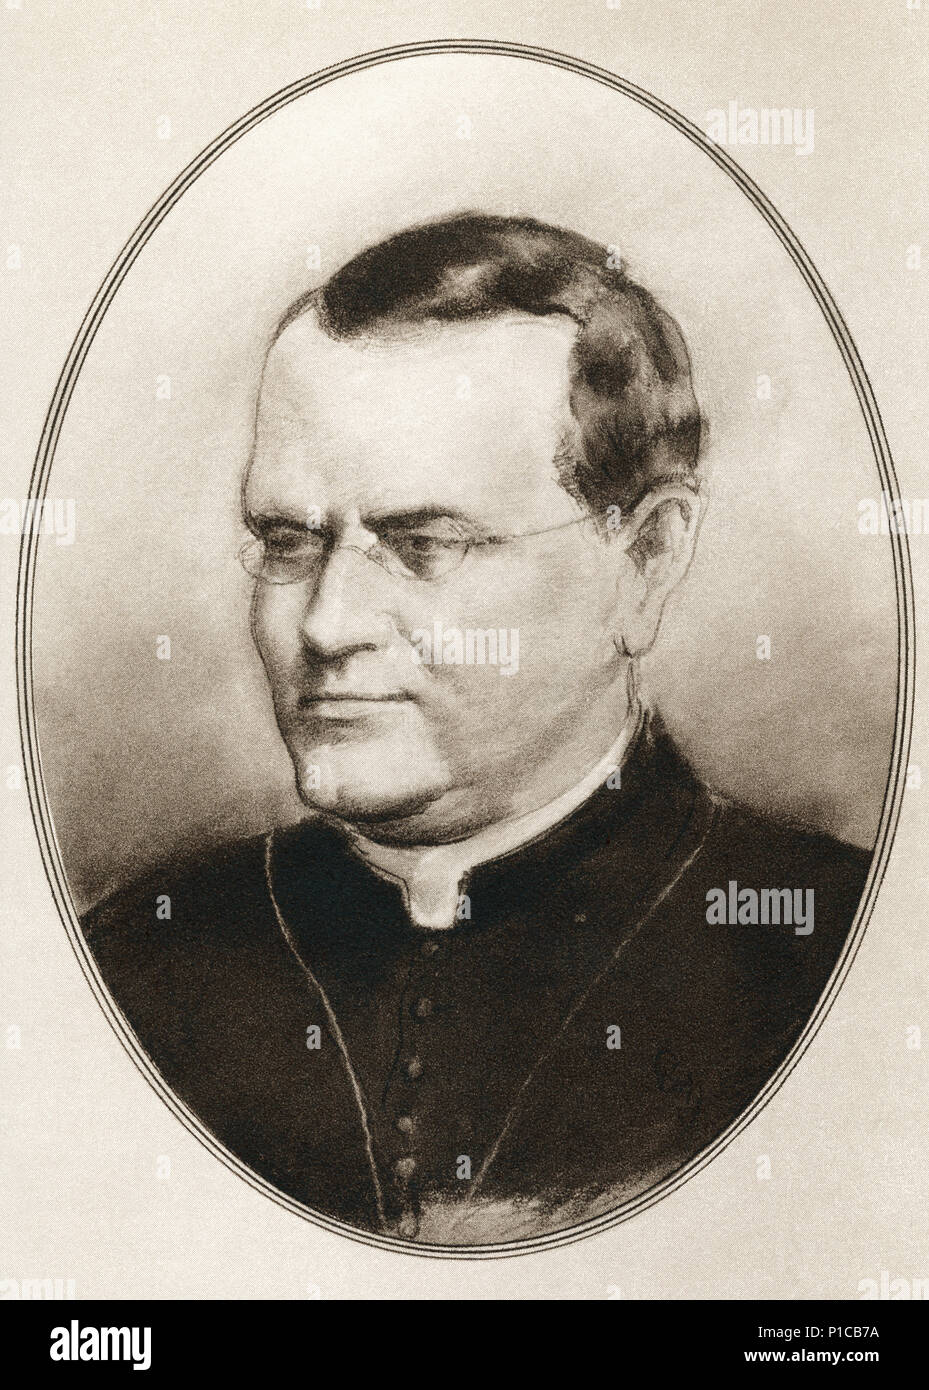 Gregor Johann Mendel, 1822 -1884.  Scientist, Augustinian friar and abbot of St. Thomas' Abbey in Brno, Margraviate of Moravia.  Illustration by Gordon Ross, American artist and illustrator (1873-1946), from Living Biographies of Great Scientists. - Stock Image